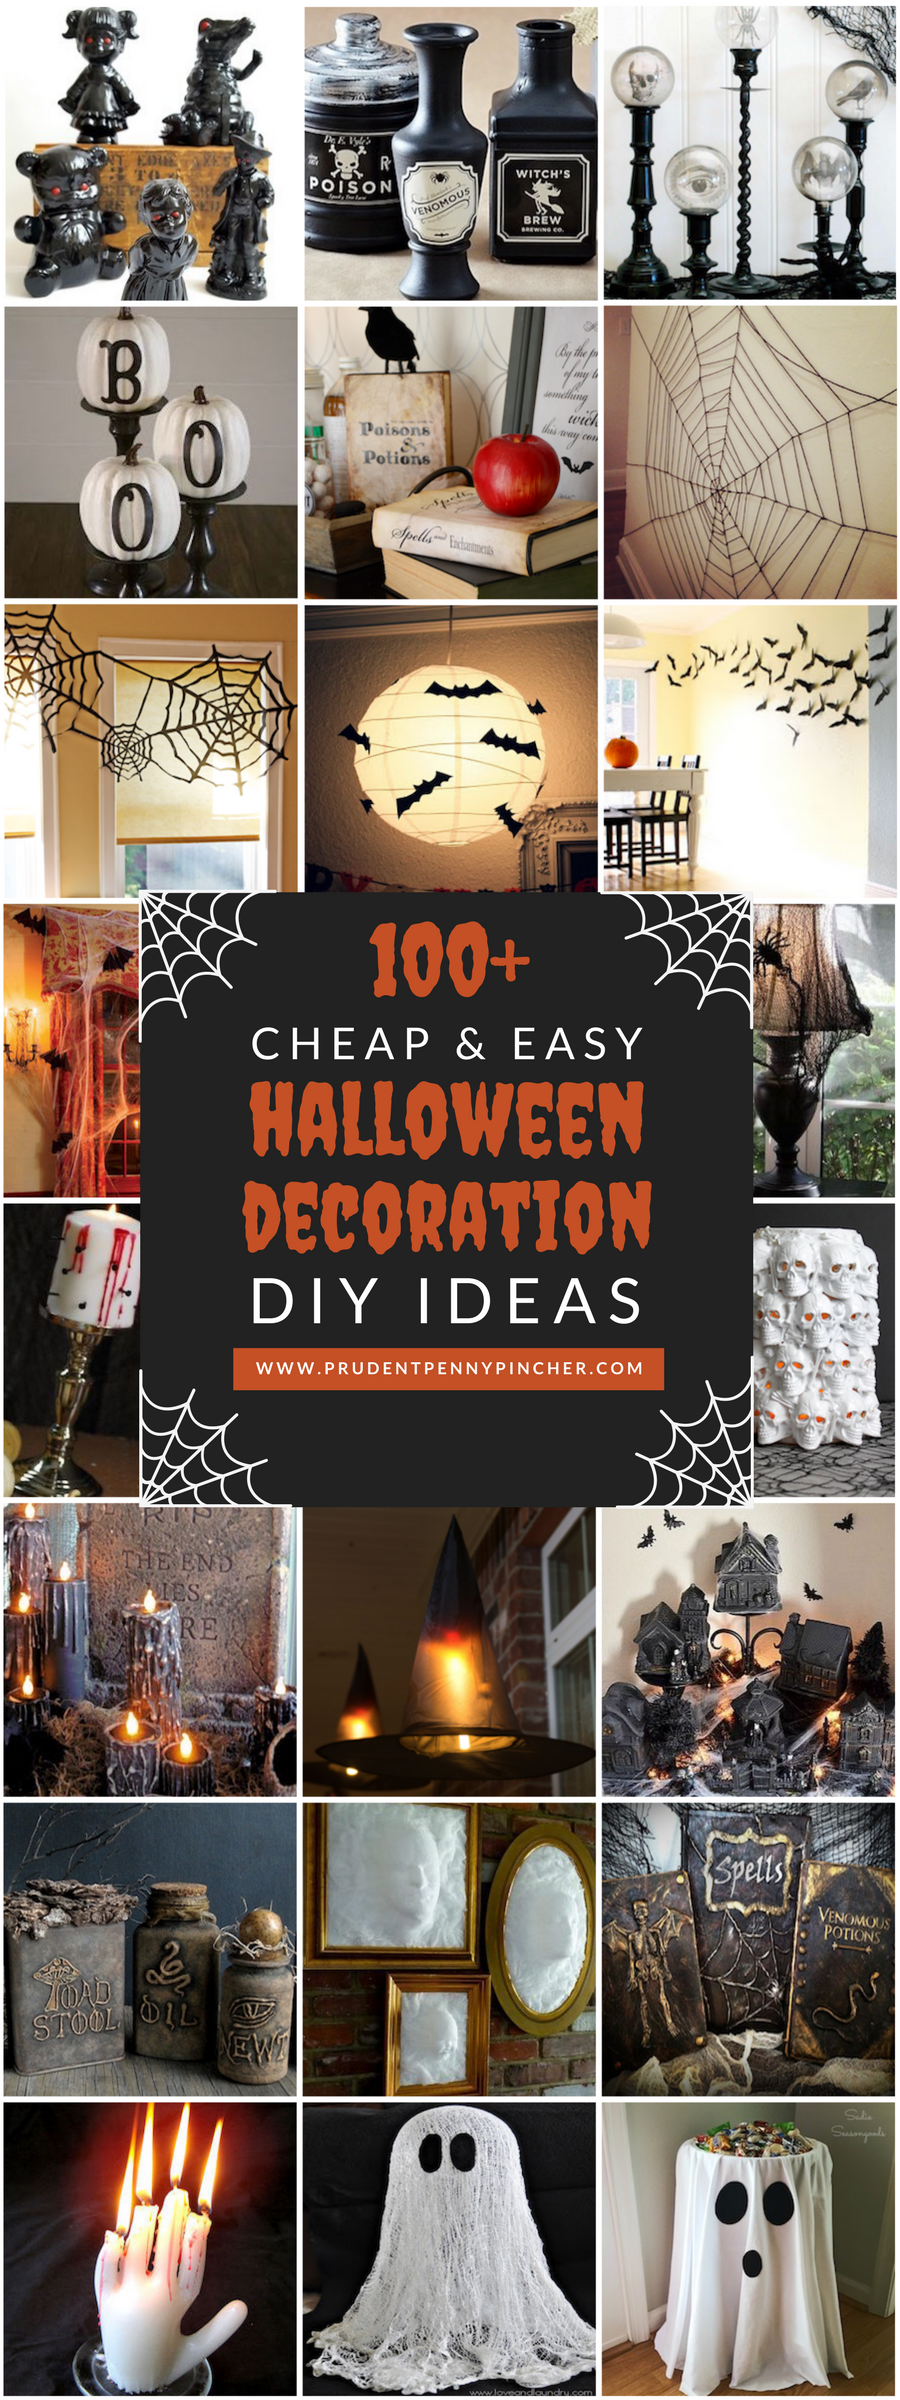 100 cheap and easy halloween decor diy ideas prudent. Black Bedroom Furniture Sets. Home Design Ideas